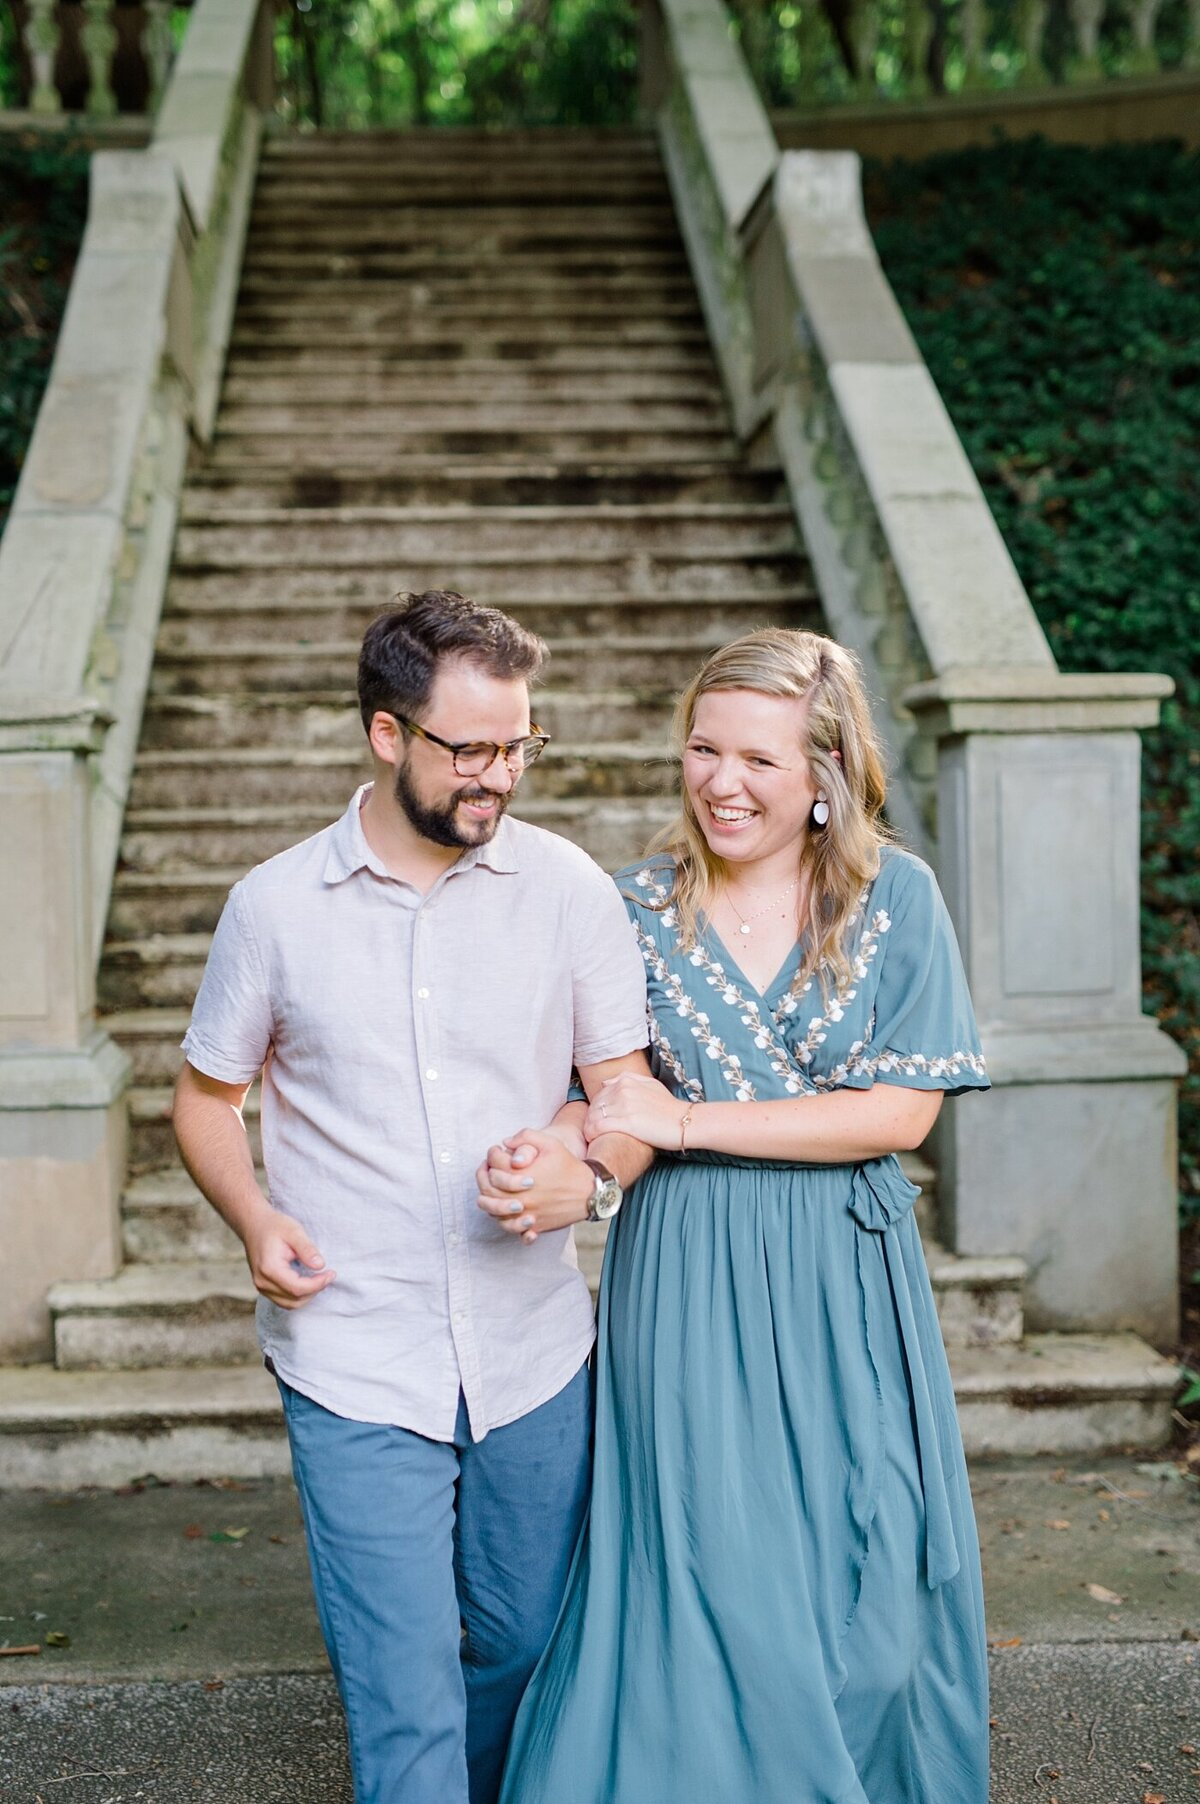 cator-woolford-gardens-engagement-wedding-photographer-laura-barnes-photo-shackelford-19